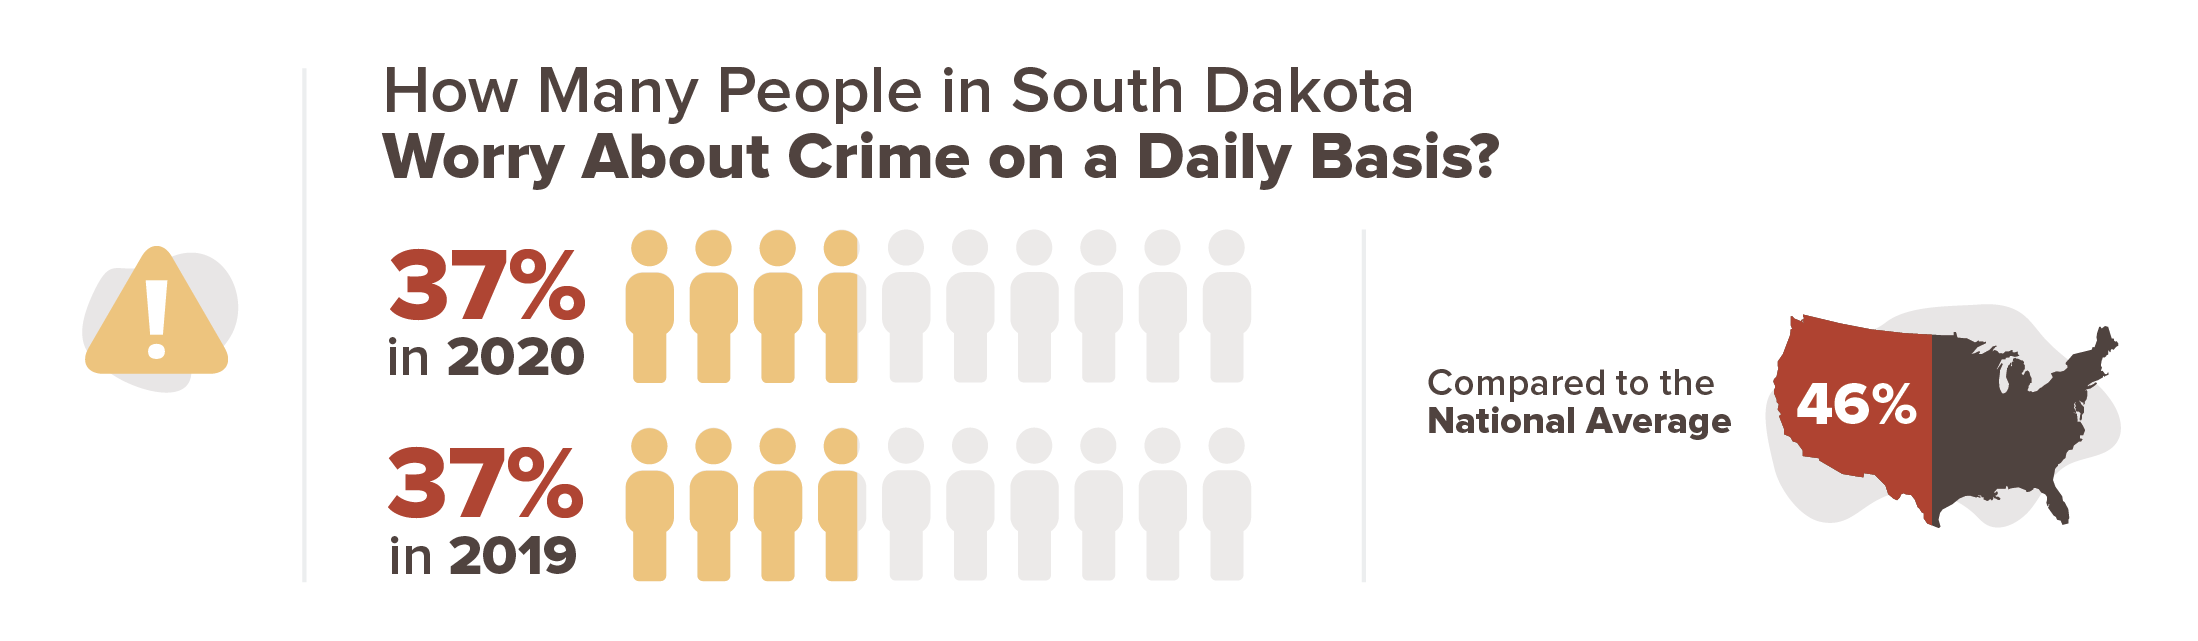 37 percent worry about crime on a daily basis